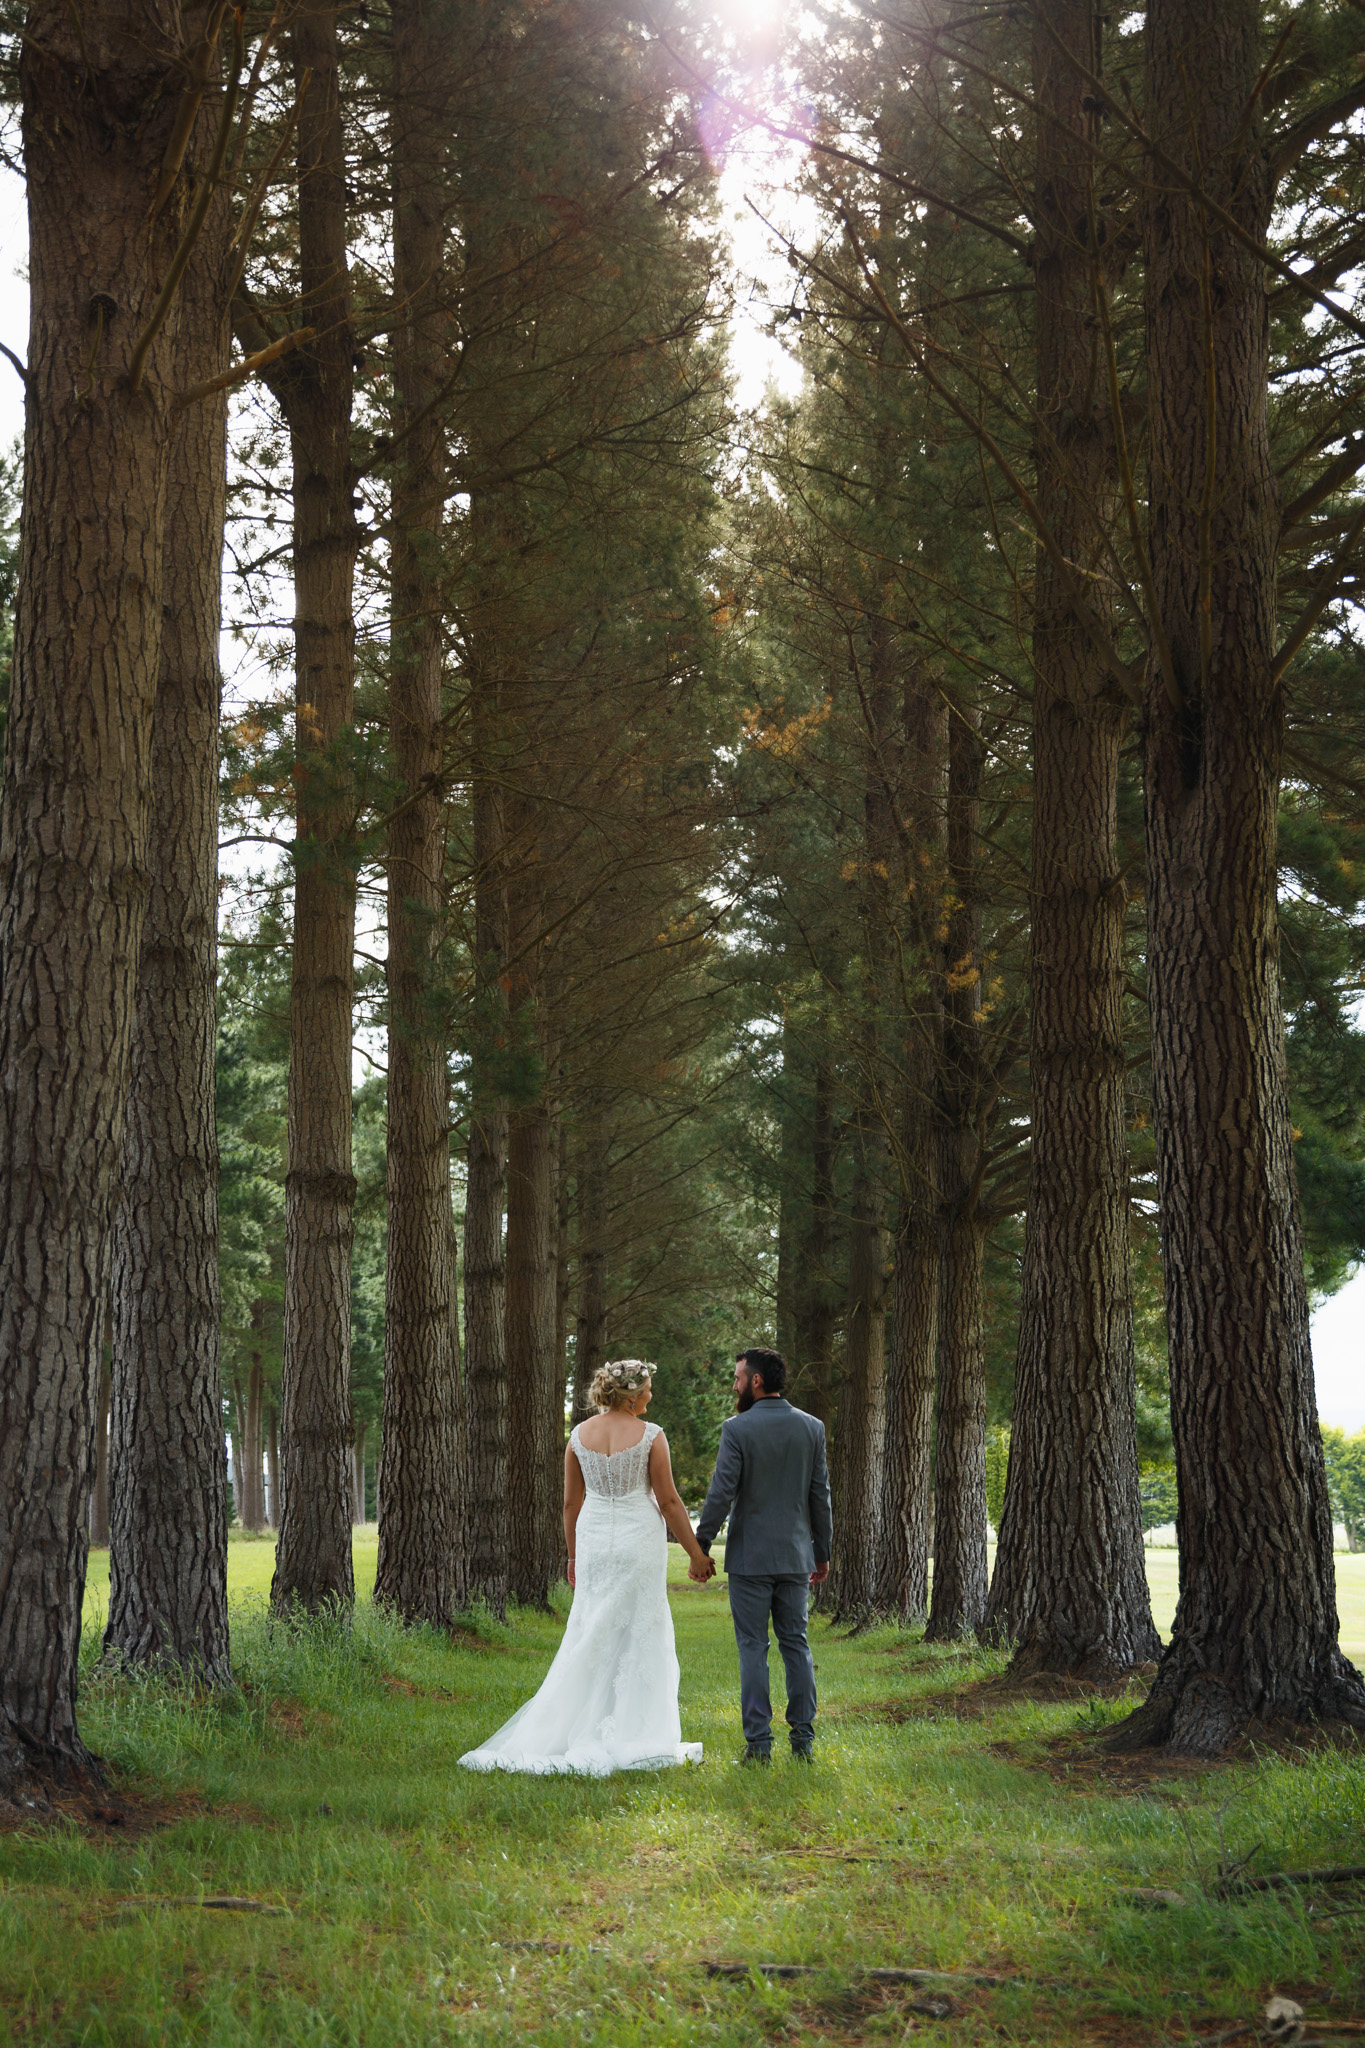 Dannivirke-golf-course-wedding-photography-highlight-new-zealand